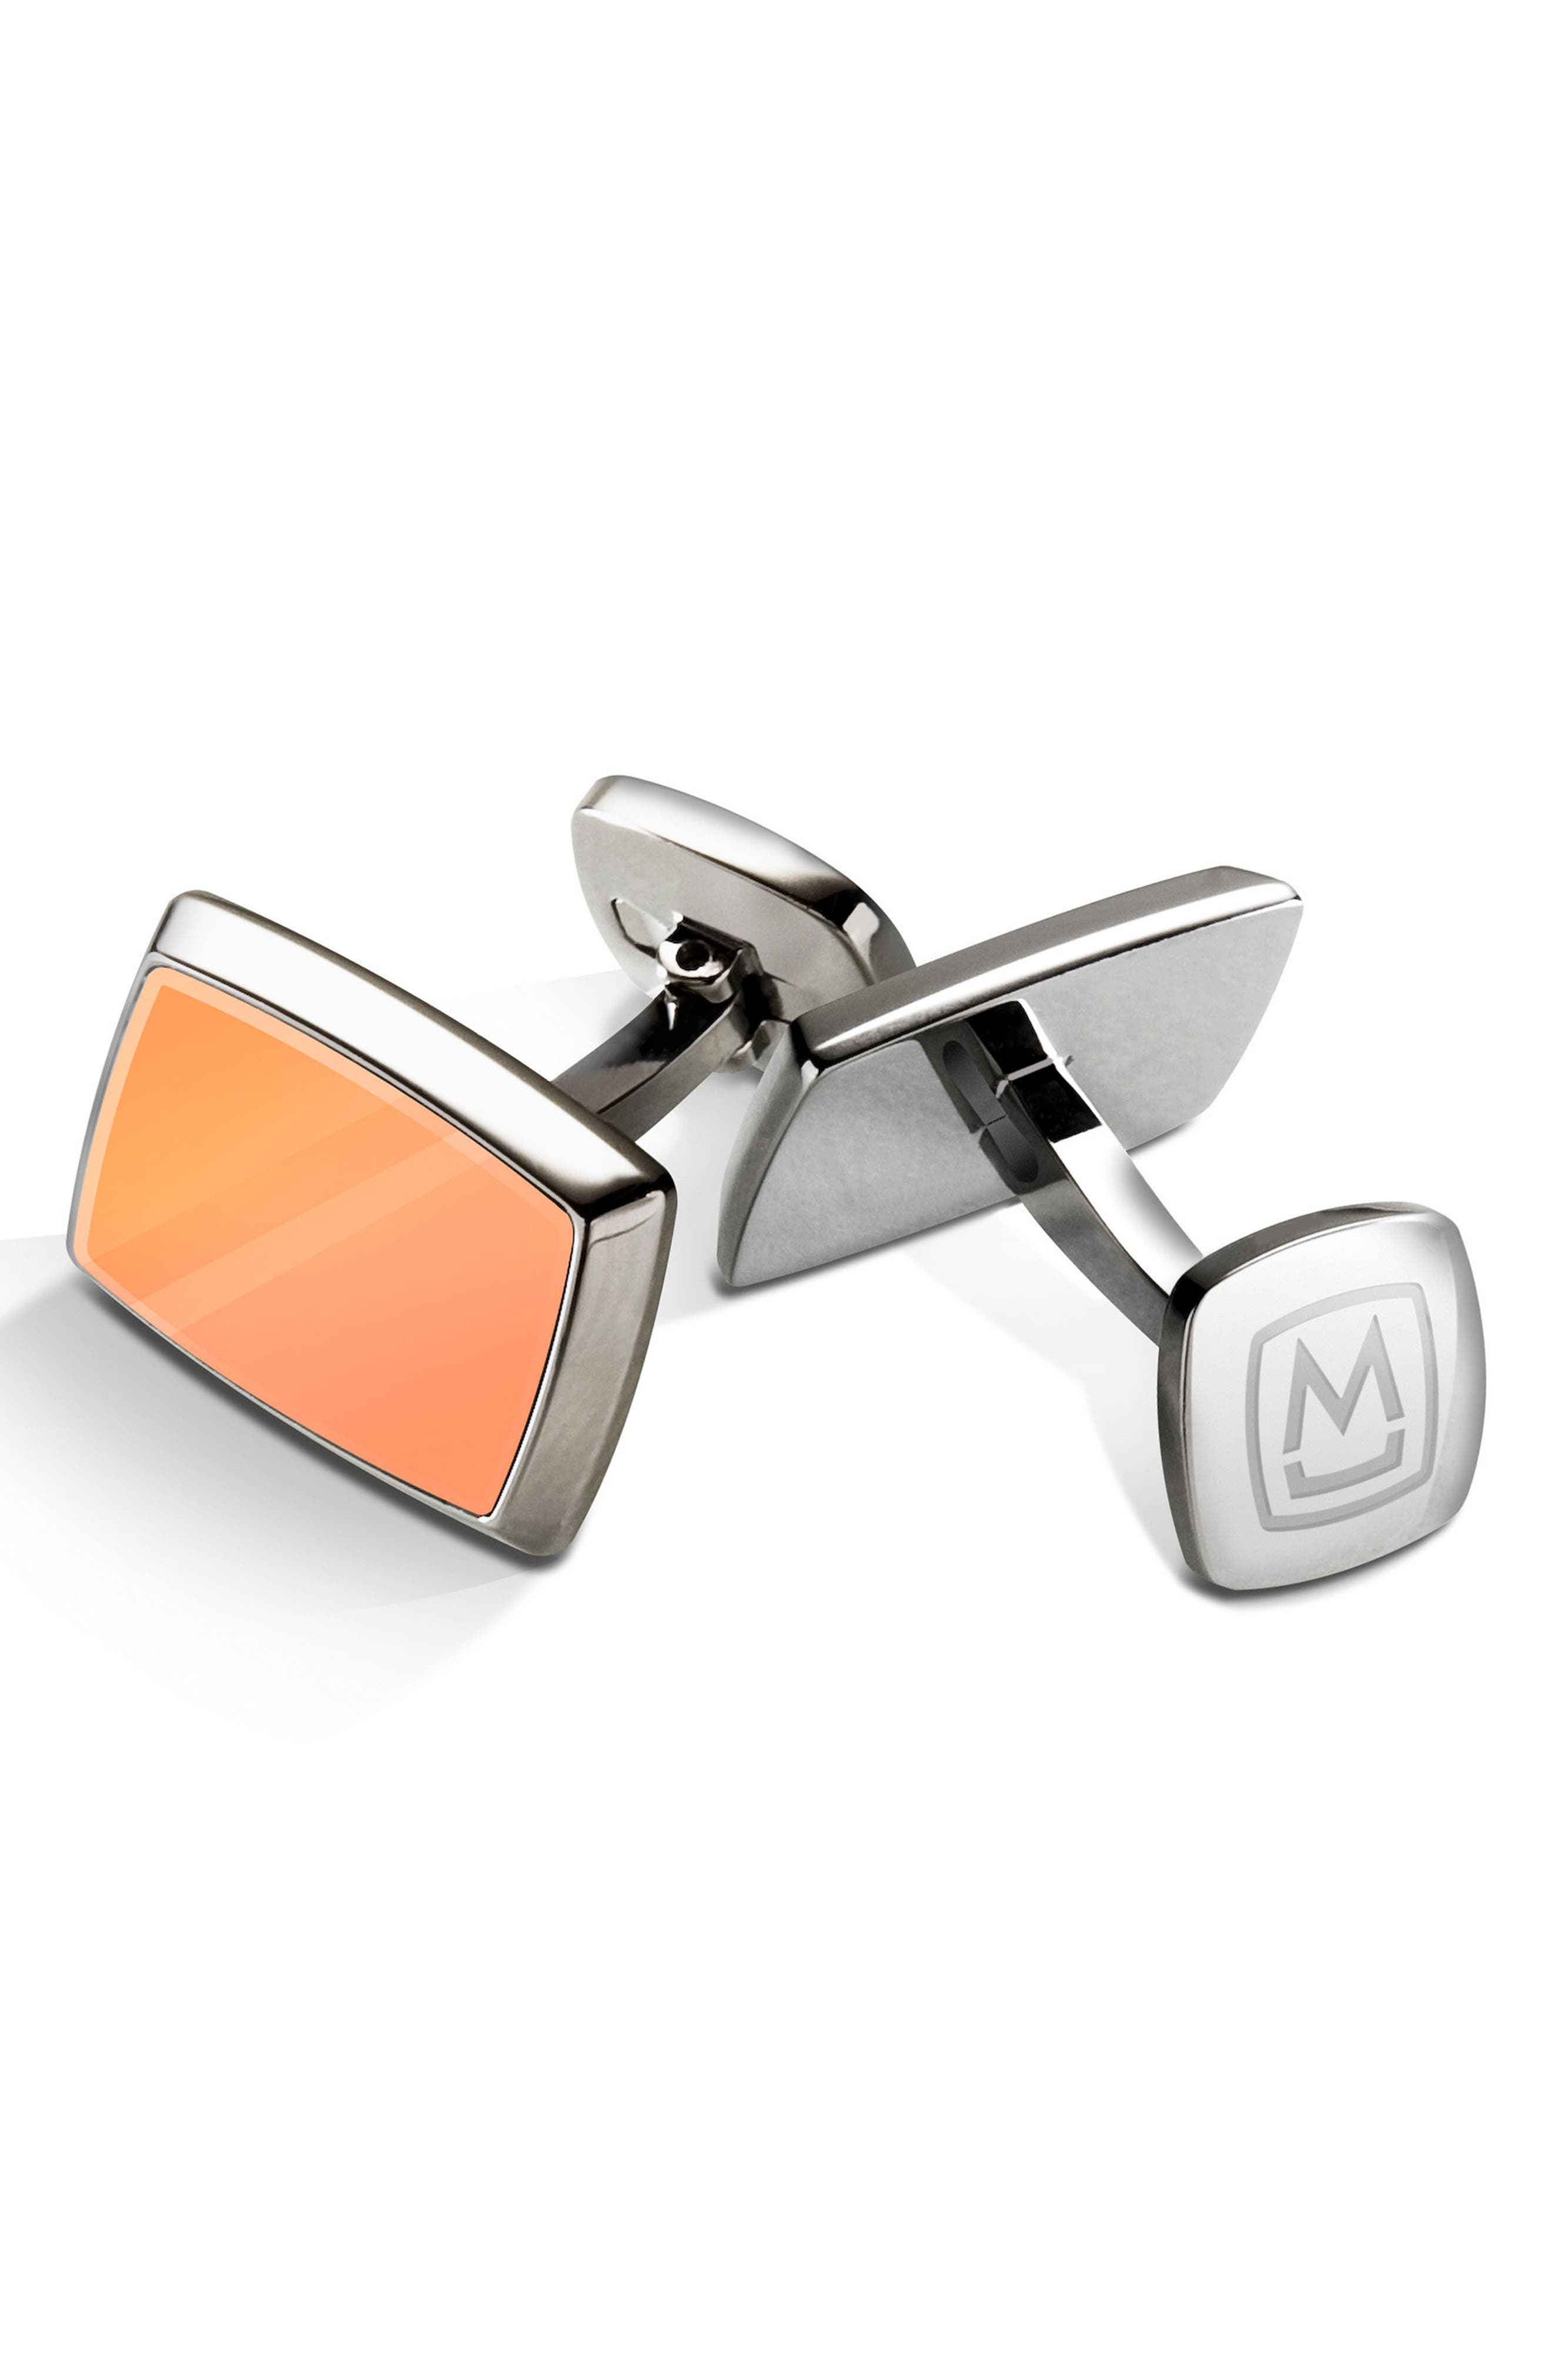 Men's M-Clip Stainless Steel Cuff Links